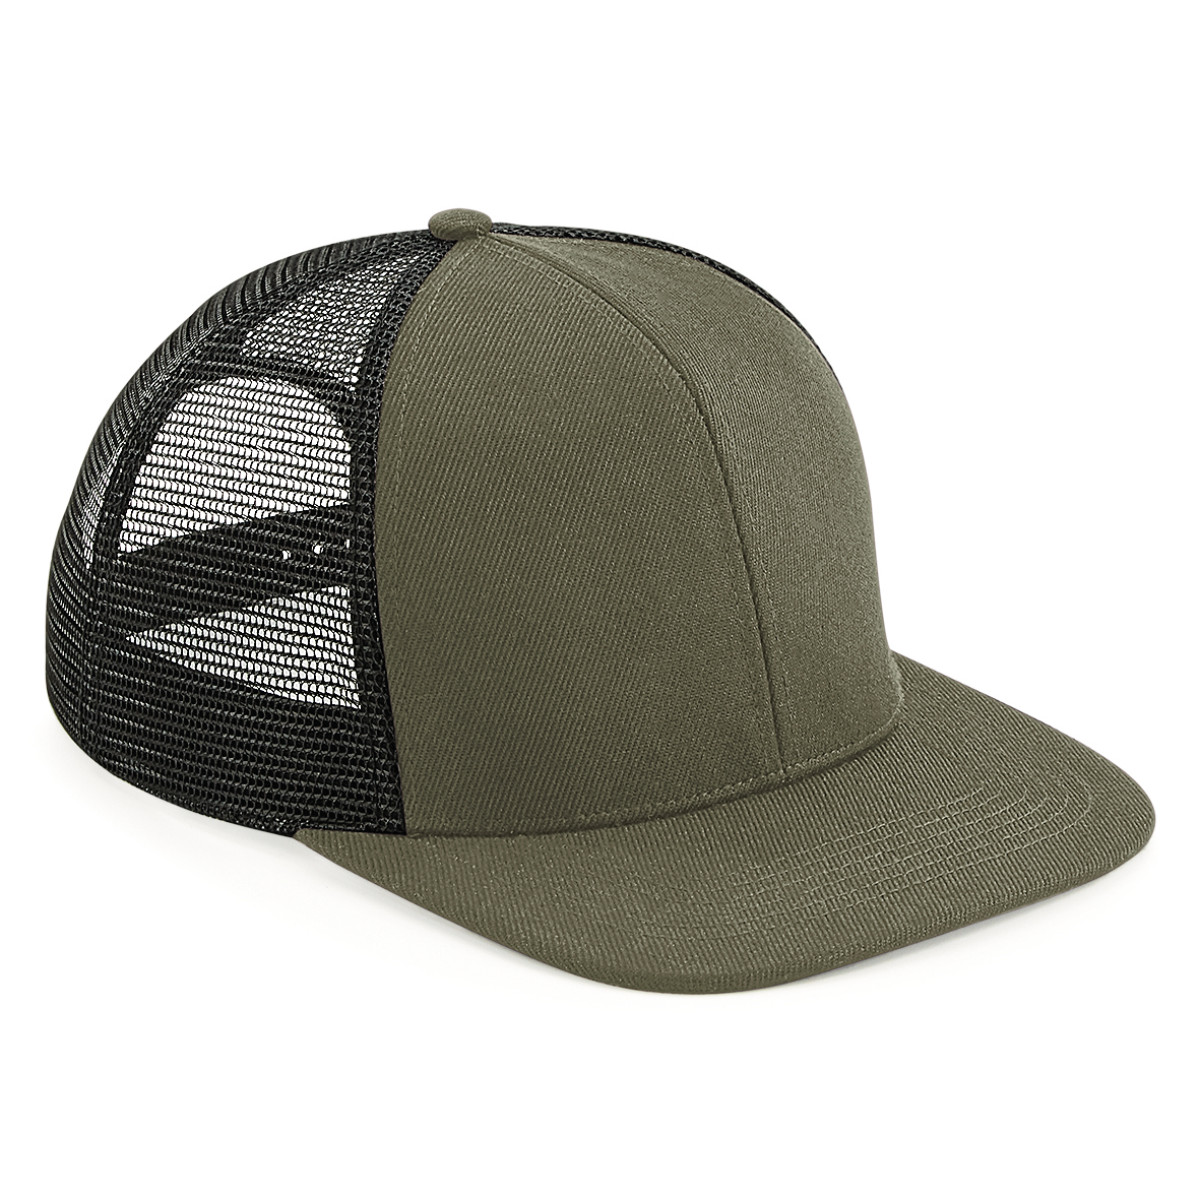 Beechfield Original FlatPeak Trucker Cap - 1